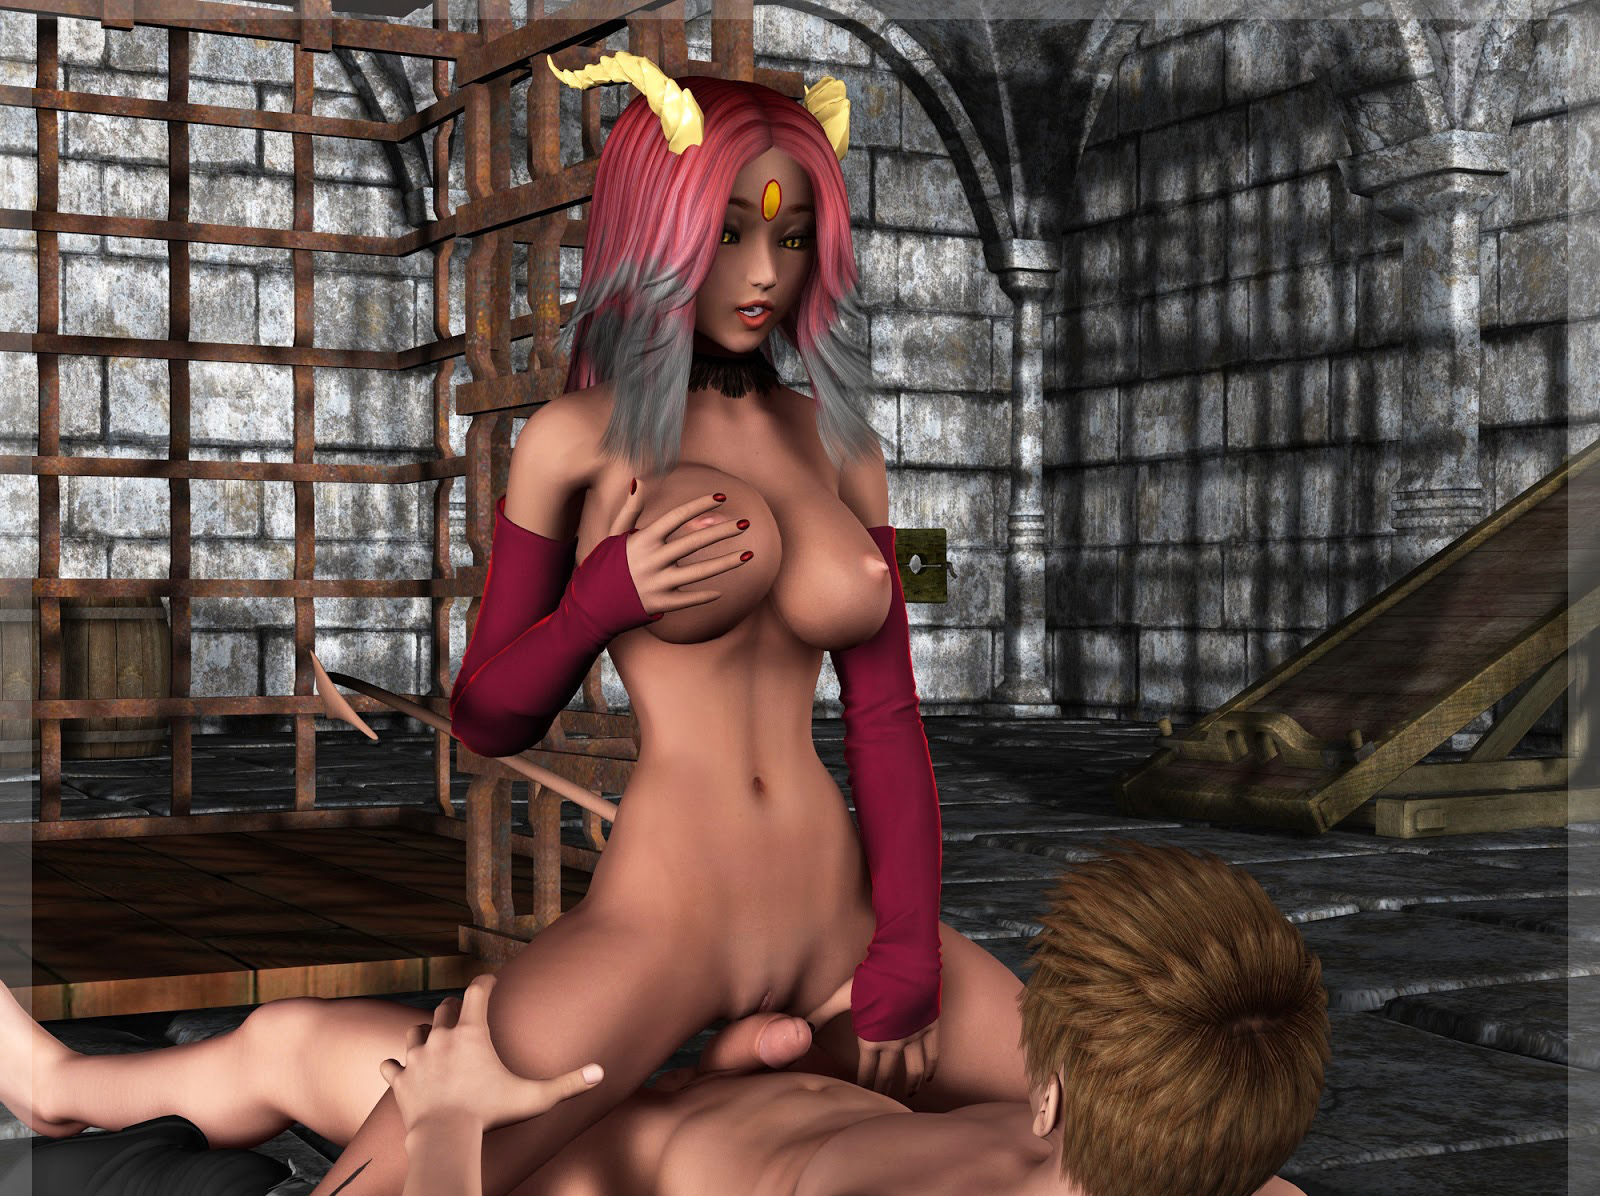 Succubus sex game cartoon photos